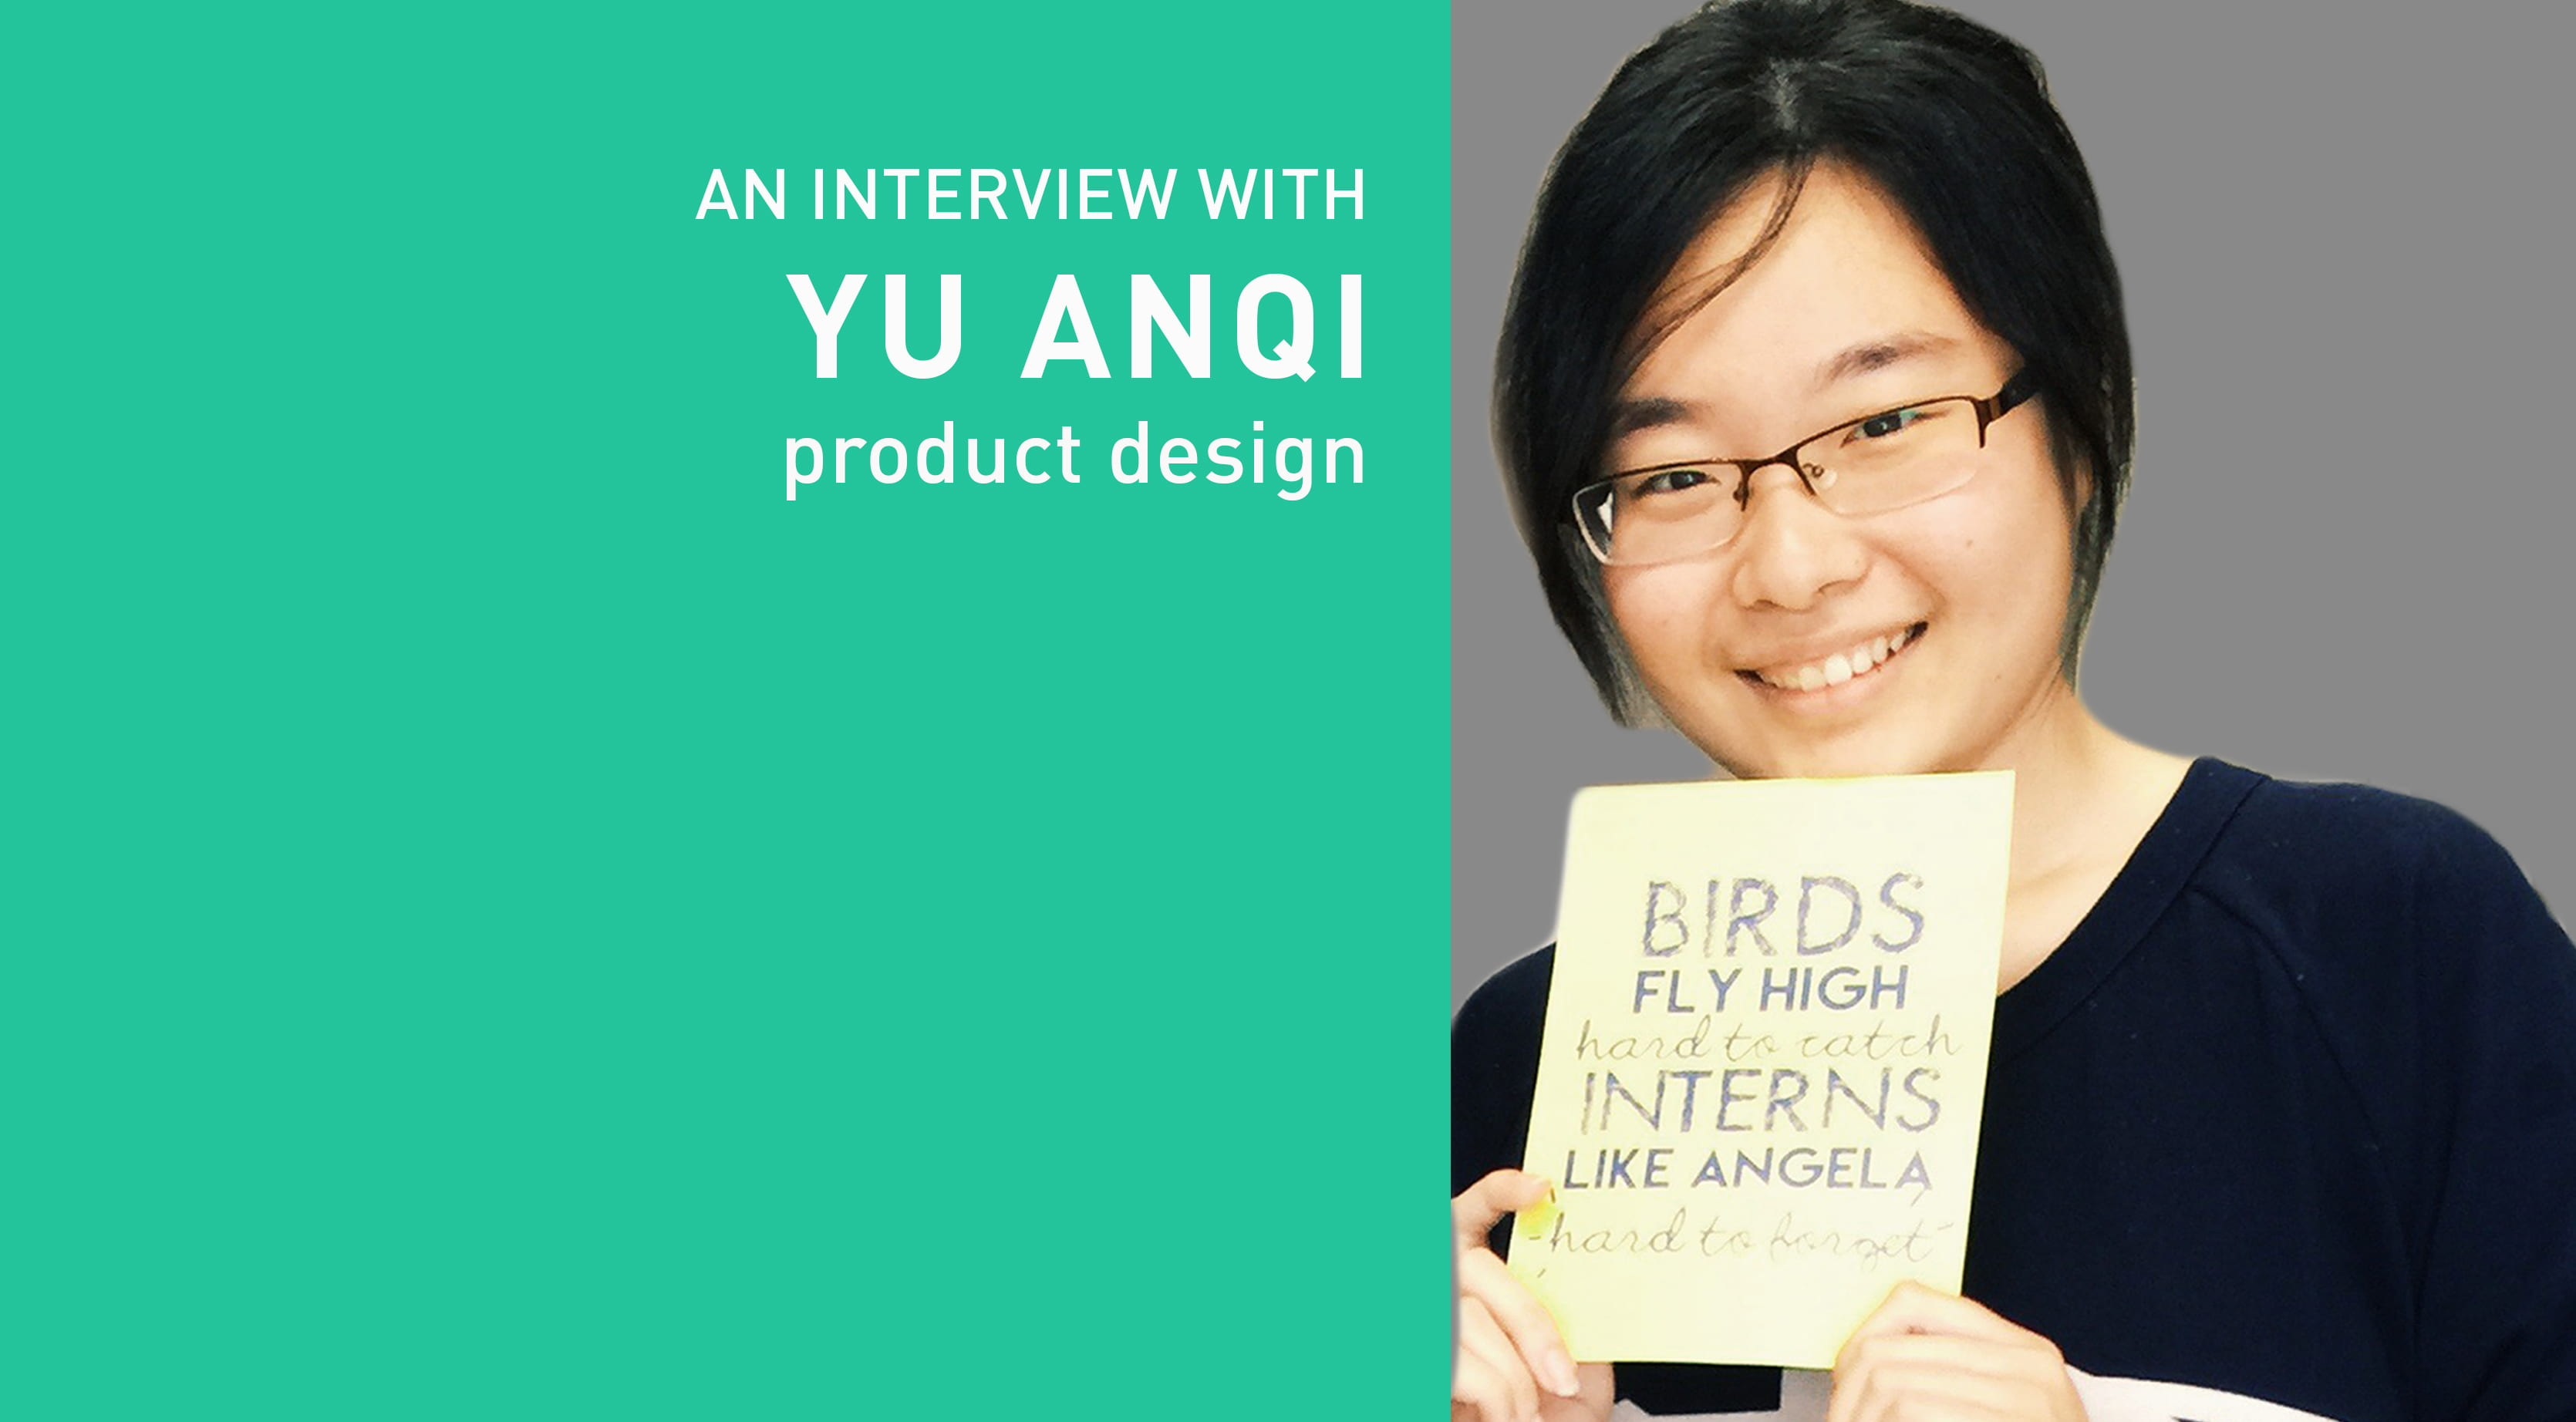 UPCOMING SHOW-AND-TELL WITH YU ANQI